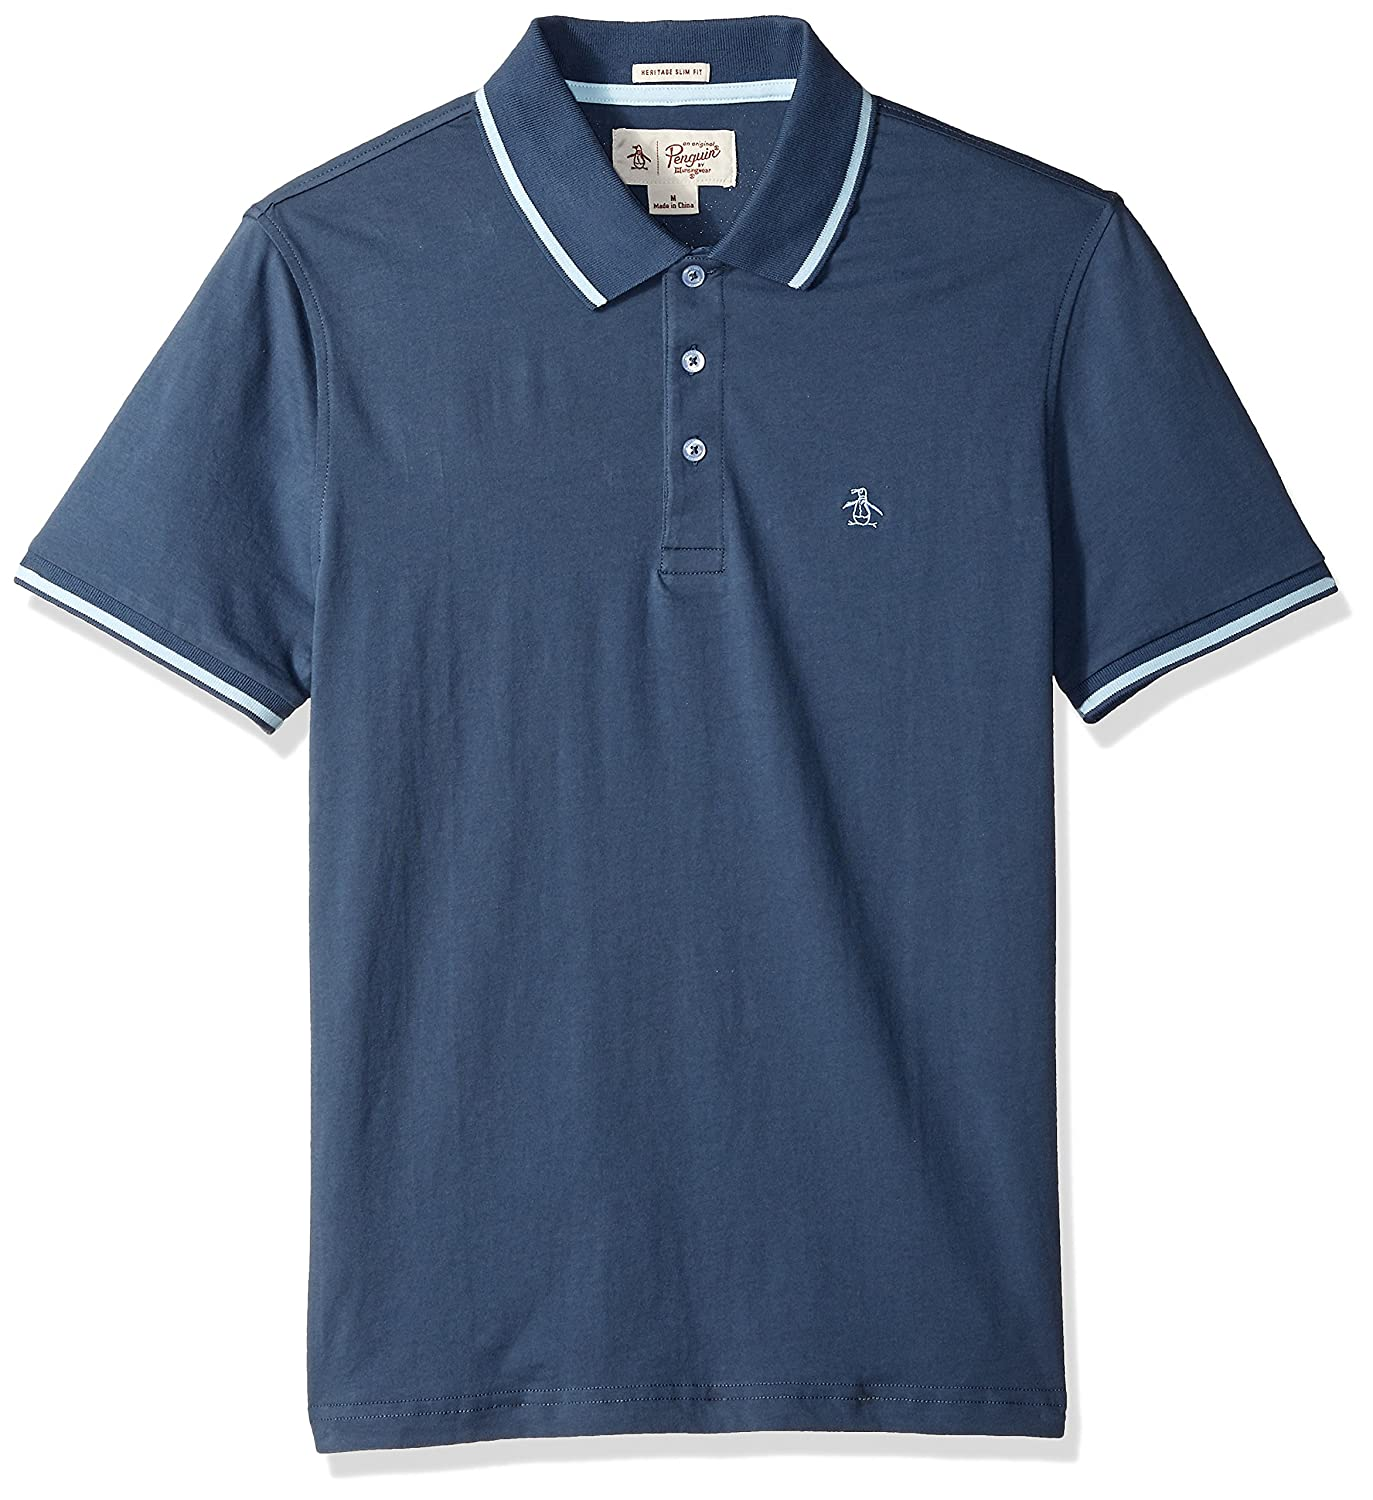 Original Penguin Mens Short Sleeve Polo with Tipping